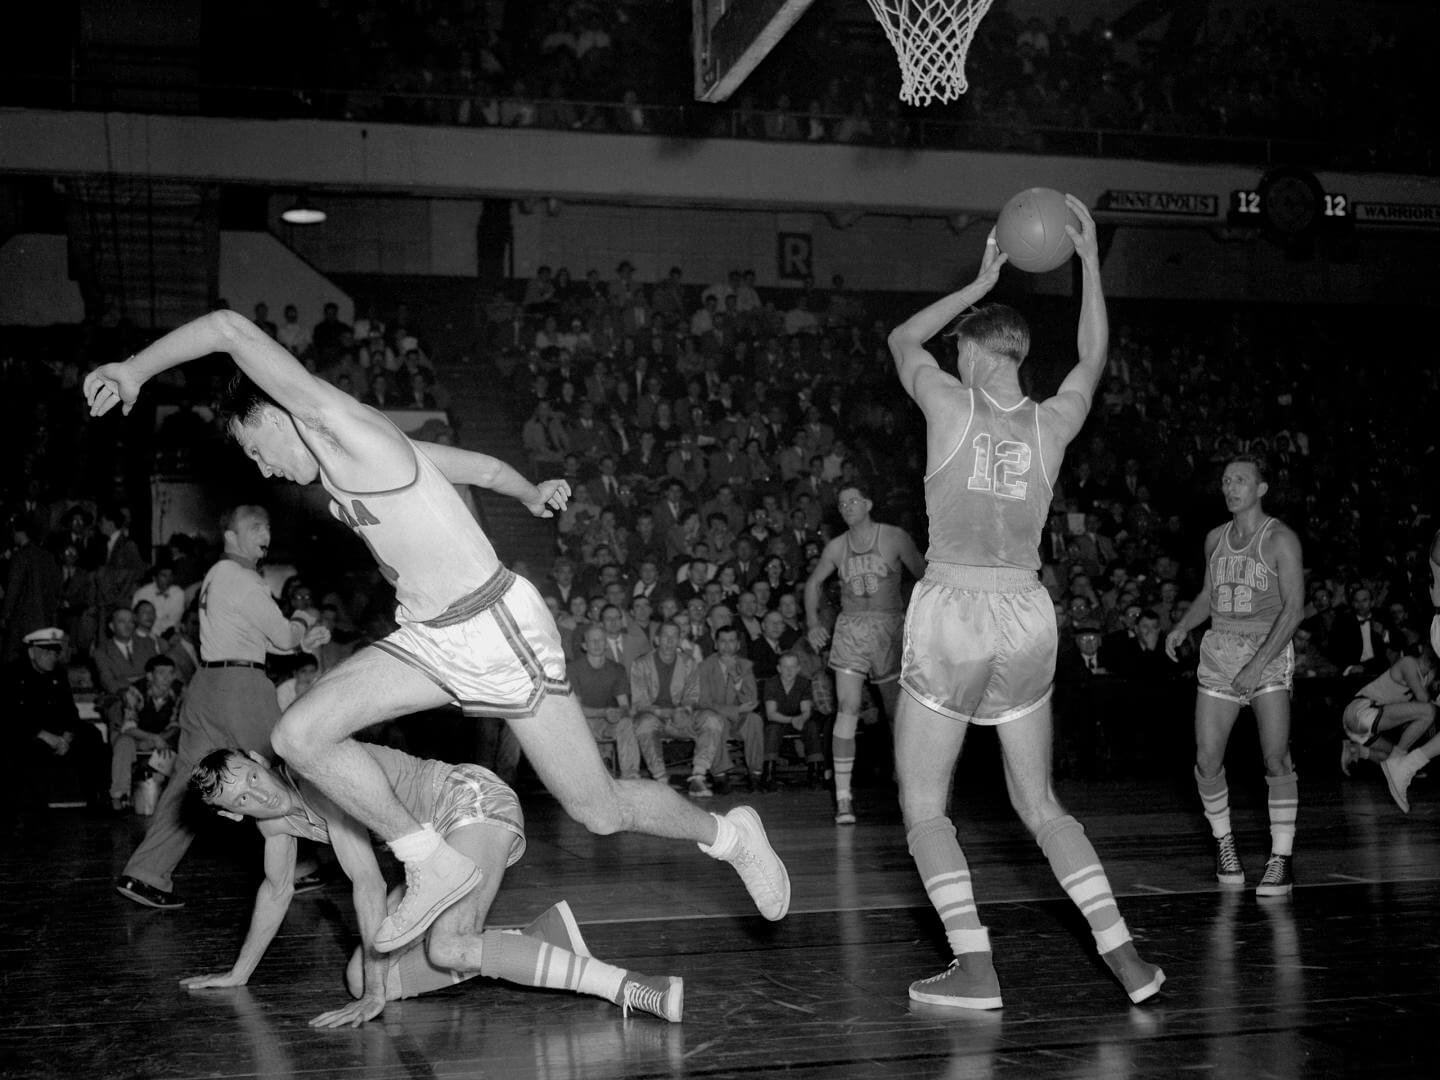 PHILADELPHIA, PA - DECEMBER 21: Howie Schultz #12 of the Minneapolis Lakers rebounds against the Philadelphia Warriors on December 21, 1951 at the Philadelphia Civic Center in Philadelphia, Pennsylvania. NOTE TO USER: User expressly acknowledges and agrees that, by downloading and or using this photograph, User is consenting to the terms and conditions of the Getty Images License Agreement. Mandatory Copyright Notice: Copyright 1951 NBAE (Photo by Charles T. Higgins/NBAE via Getty Images)